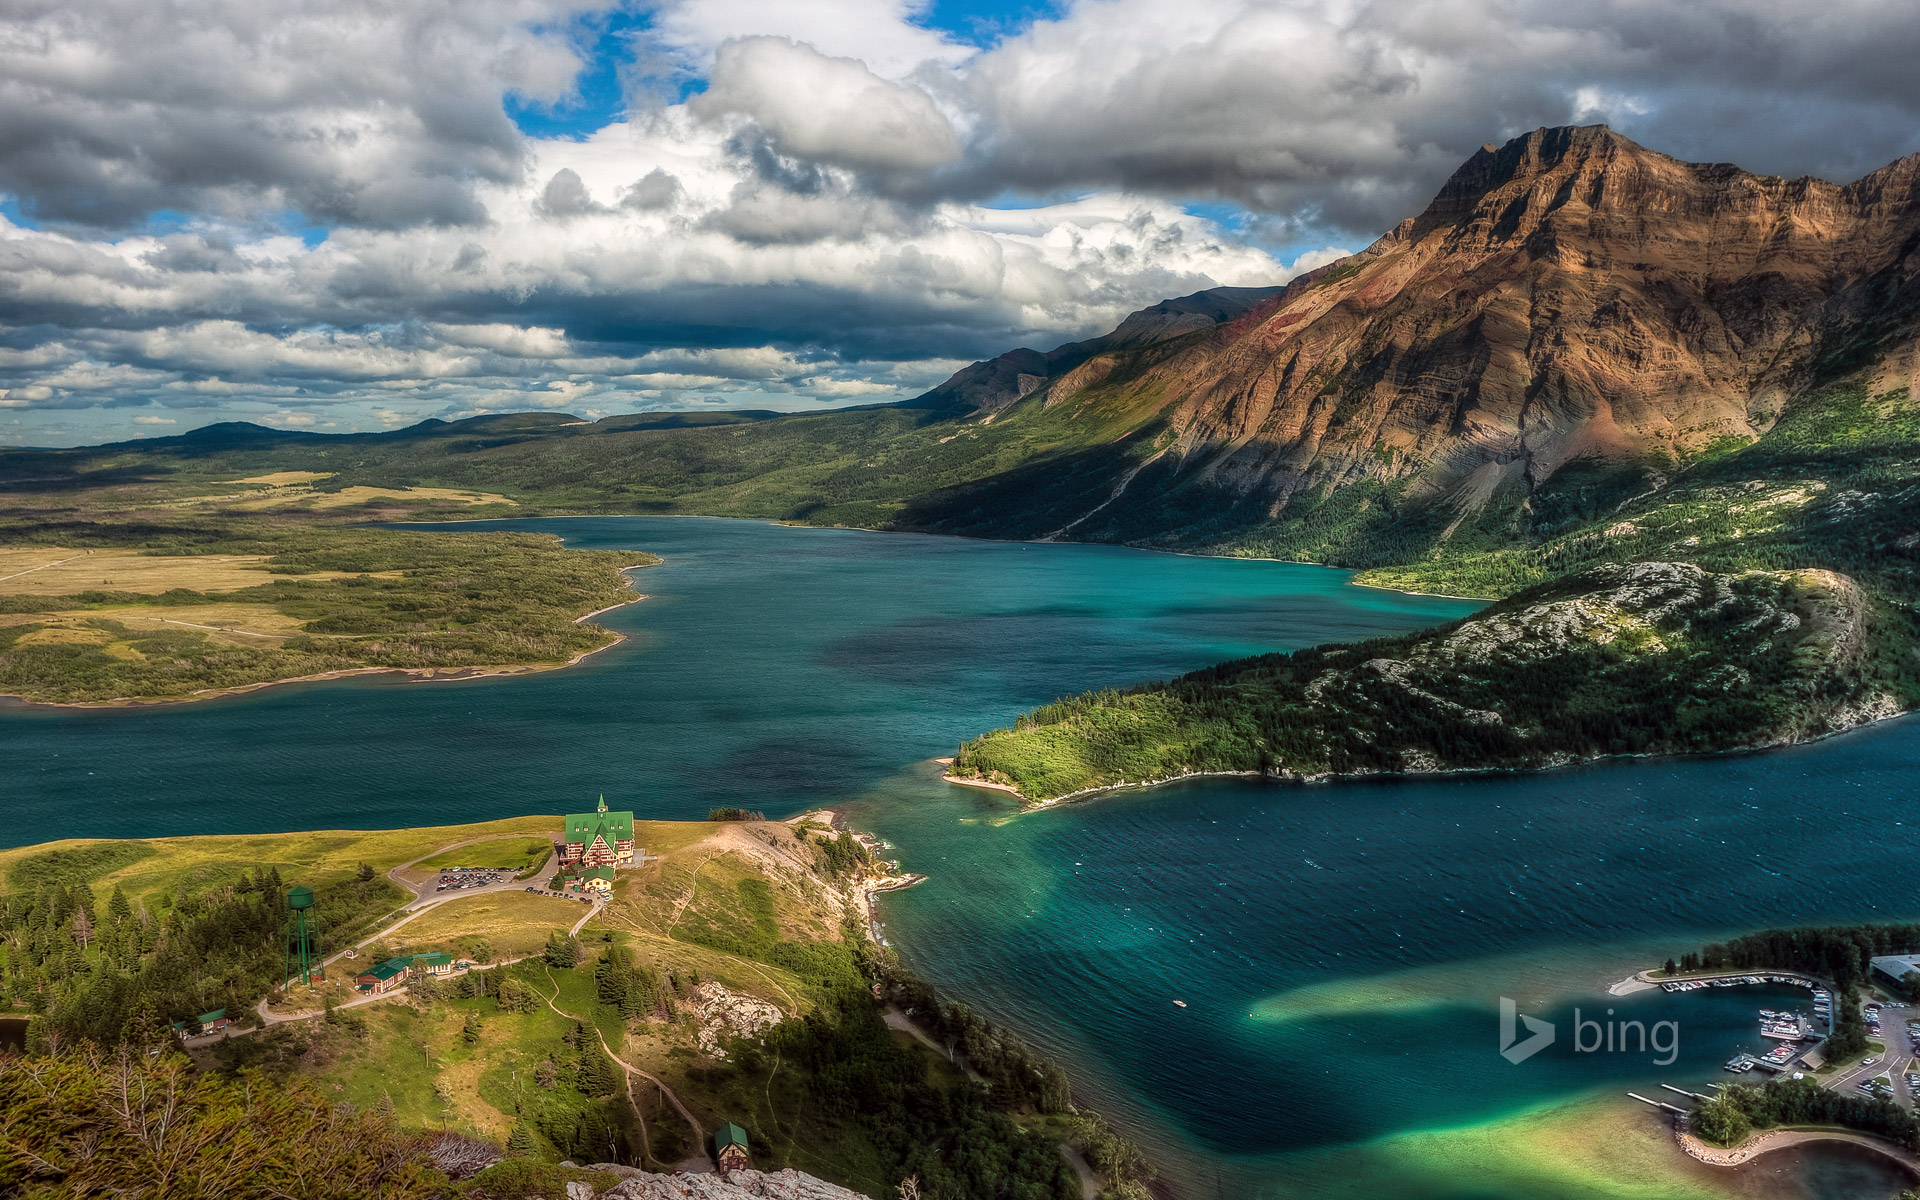 A view from Bear's Hump in Waterton Lakes National Park, Alberta, Canada